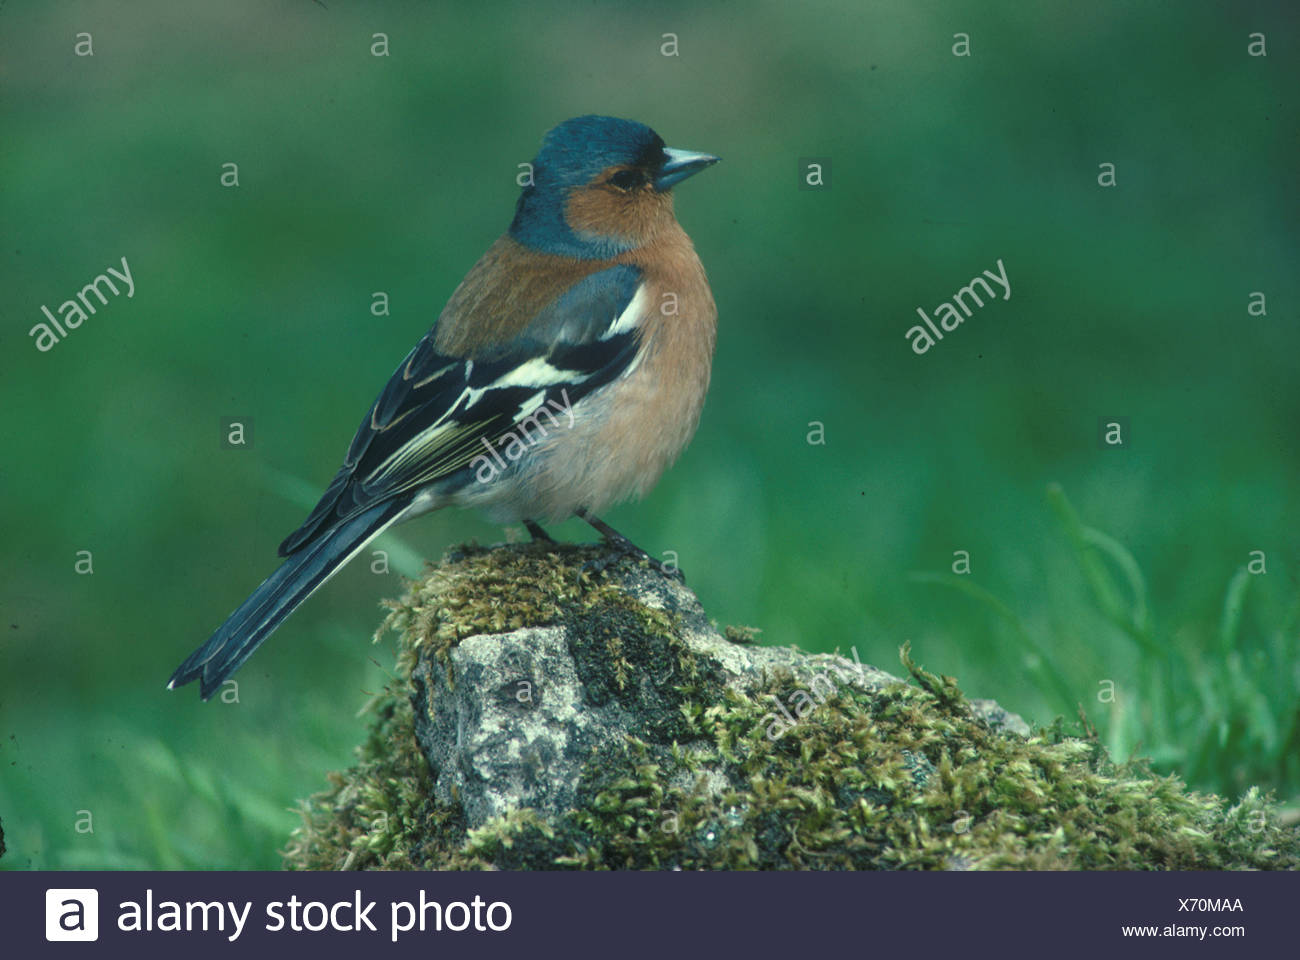 Chaffinch Fringilla coelebs Perched on rock moss on rock - Stock Image